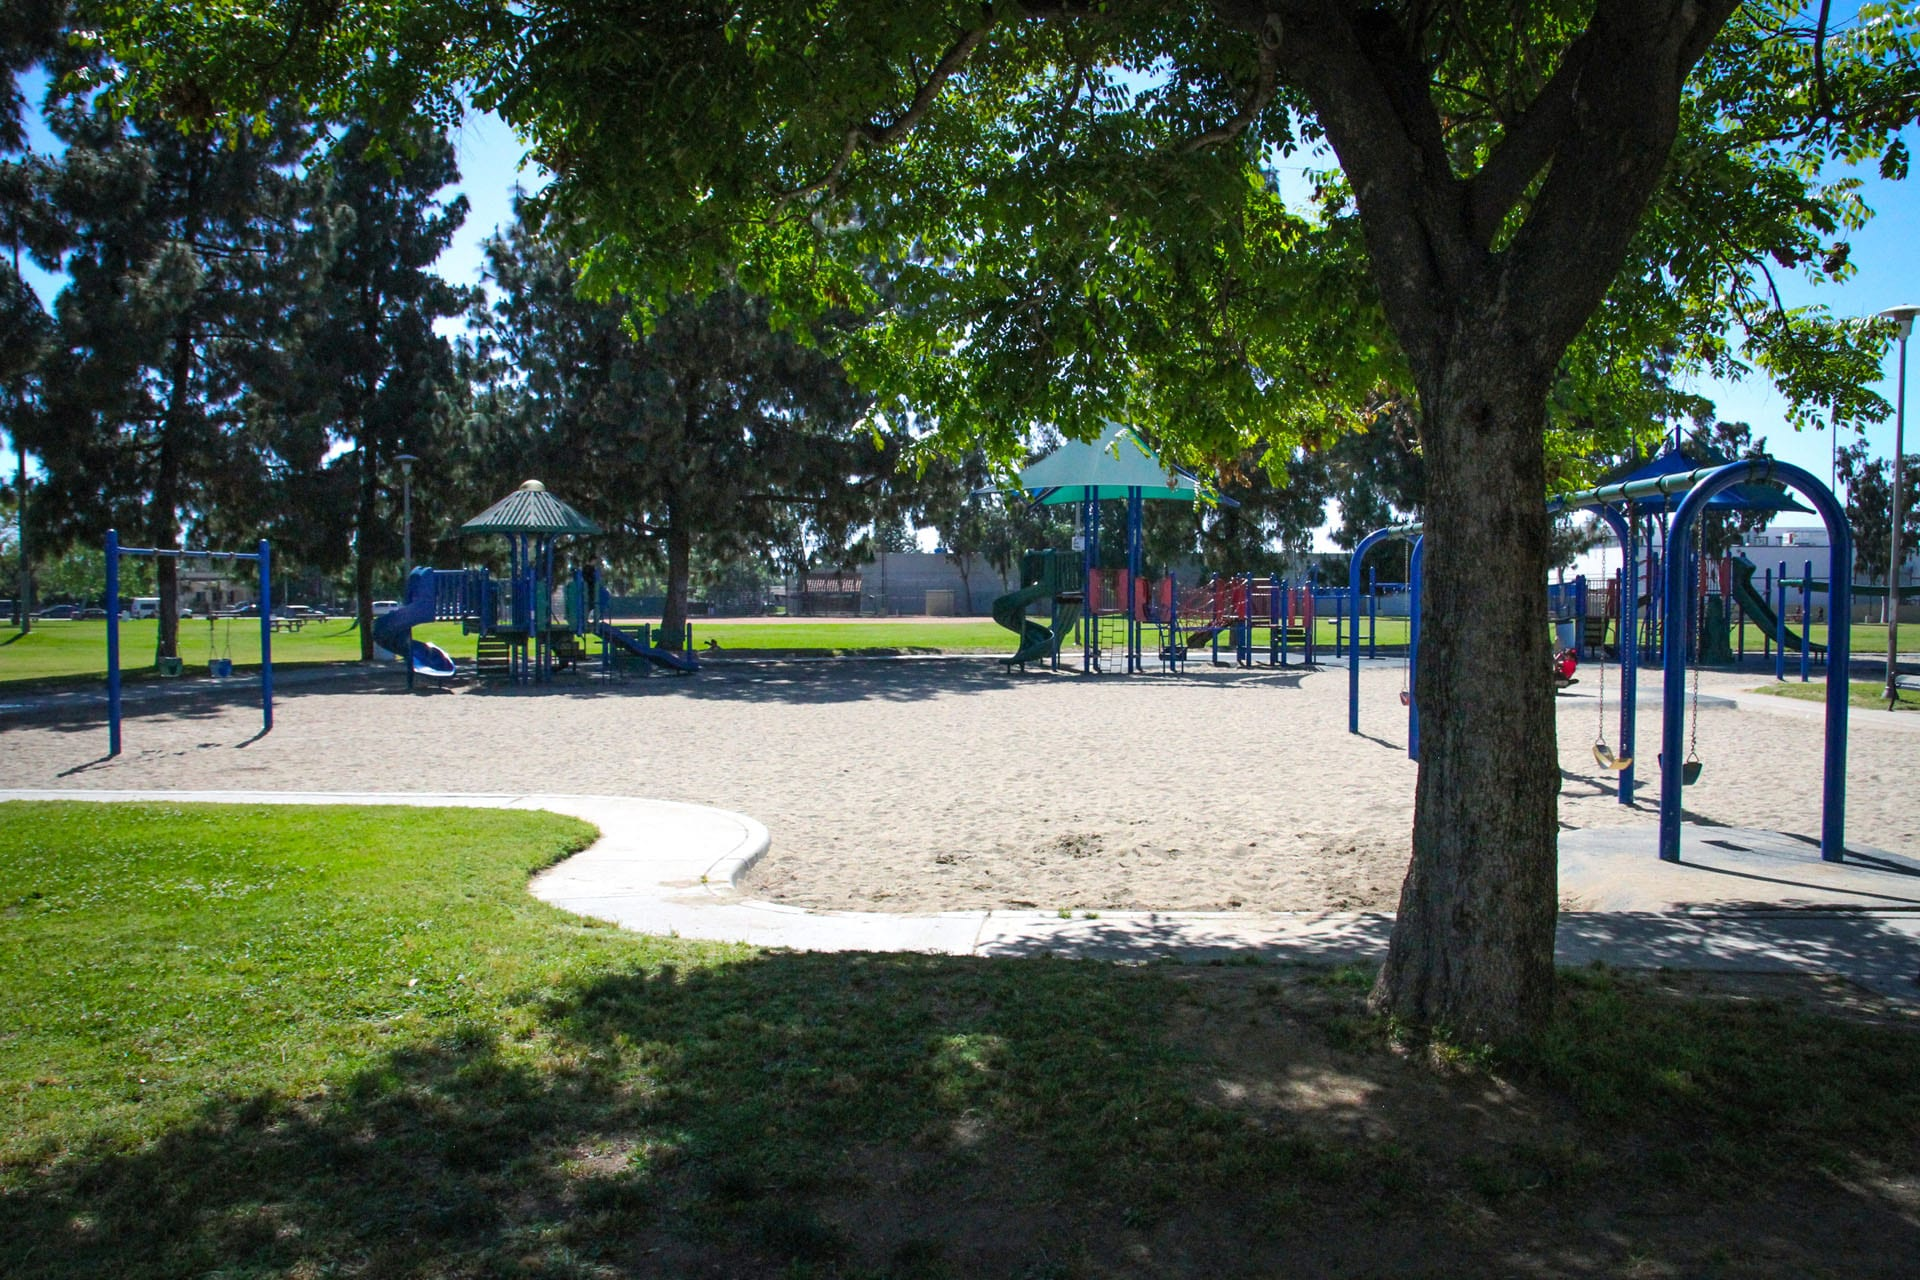 A tree next to the playground and swings